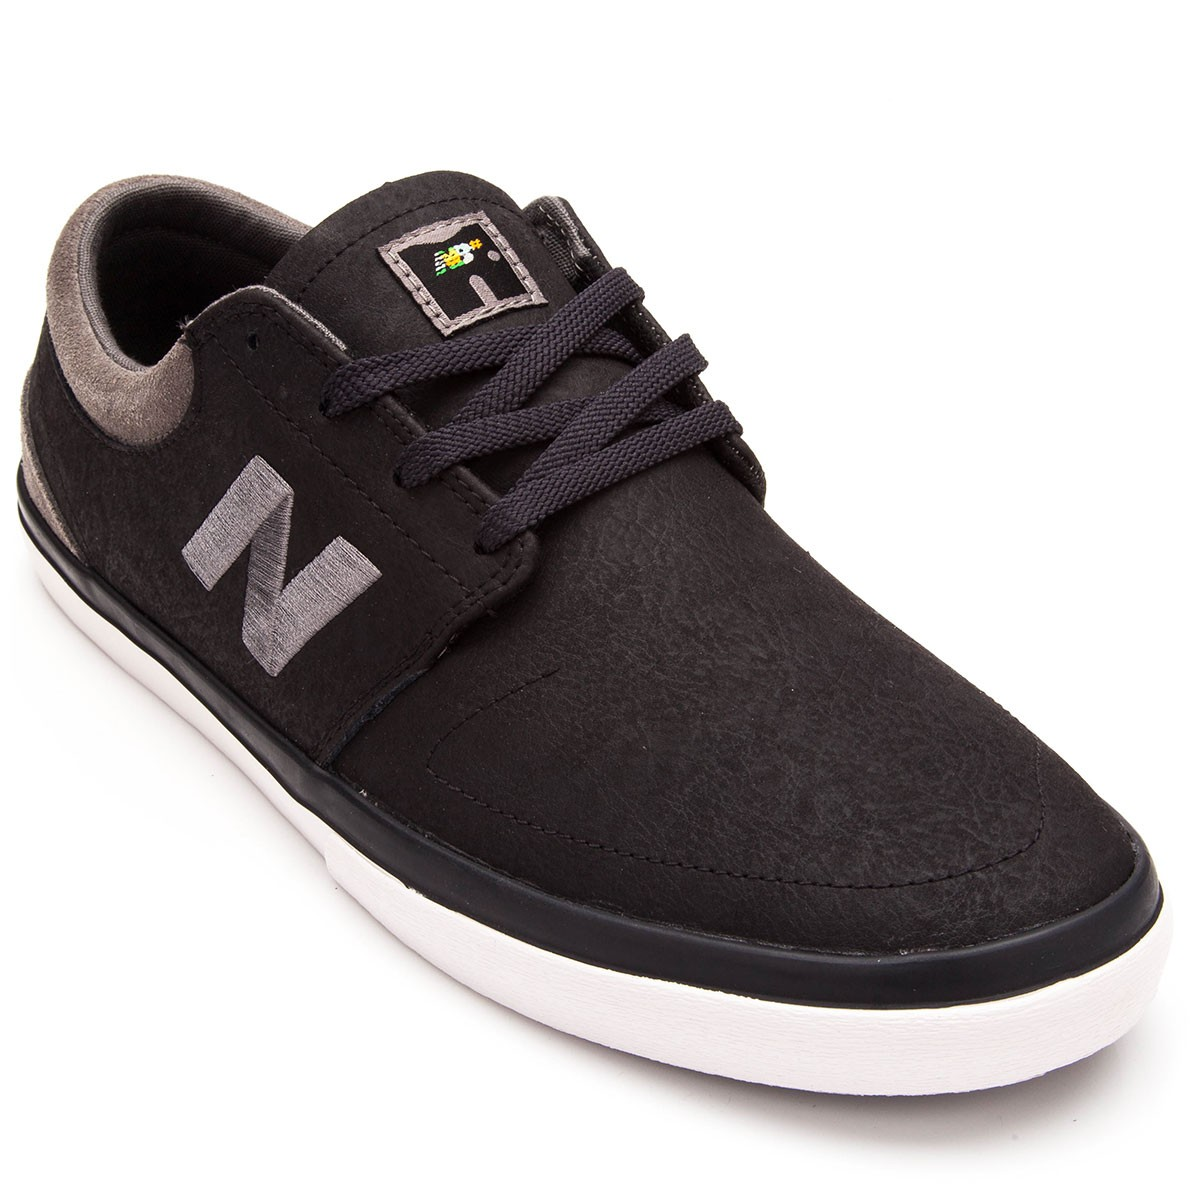 Best New Balance Shoes For Narrow Feet